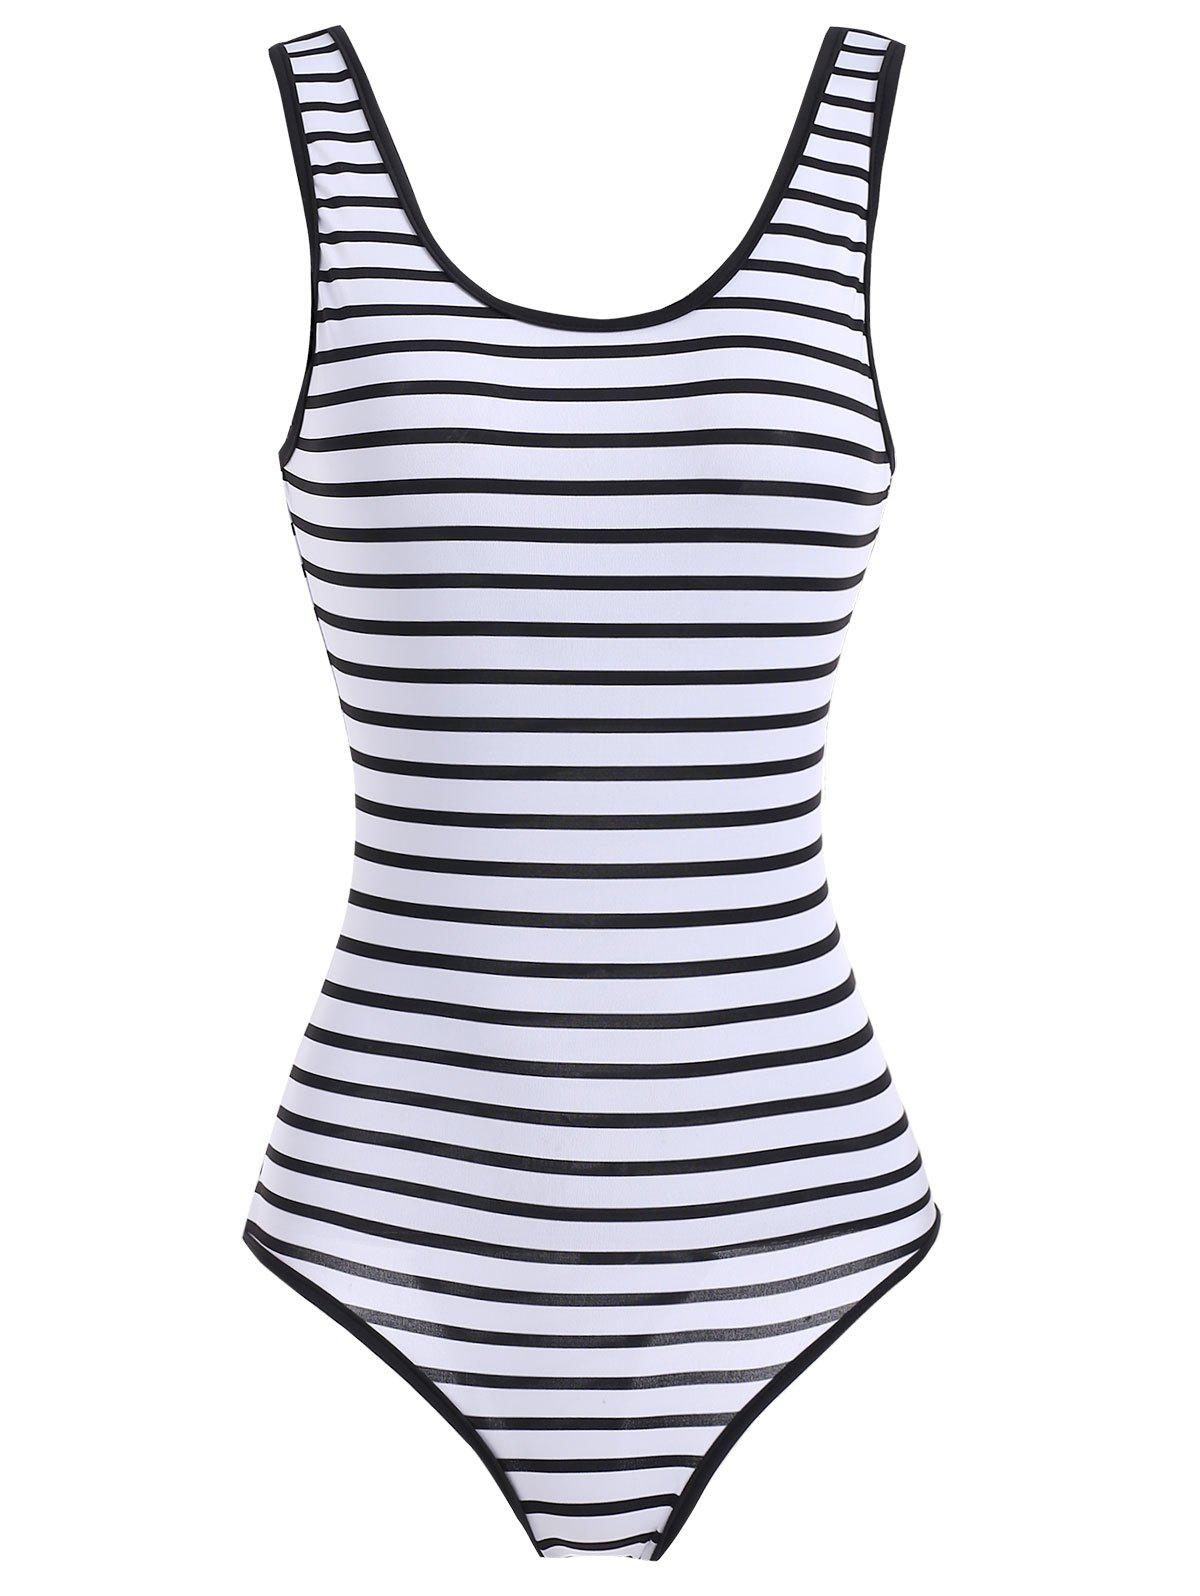 75fa4d2247 42% OFF   2019 Scoop Neck Striped Swimwear